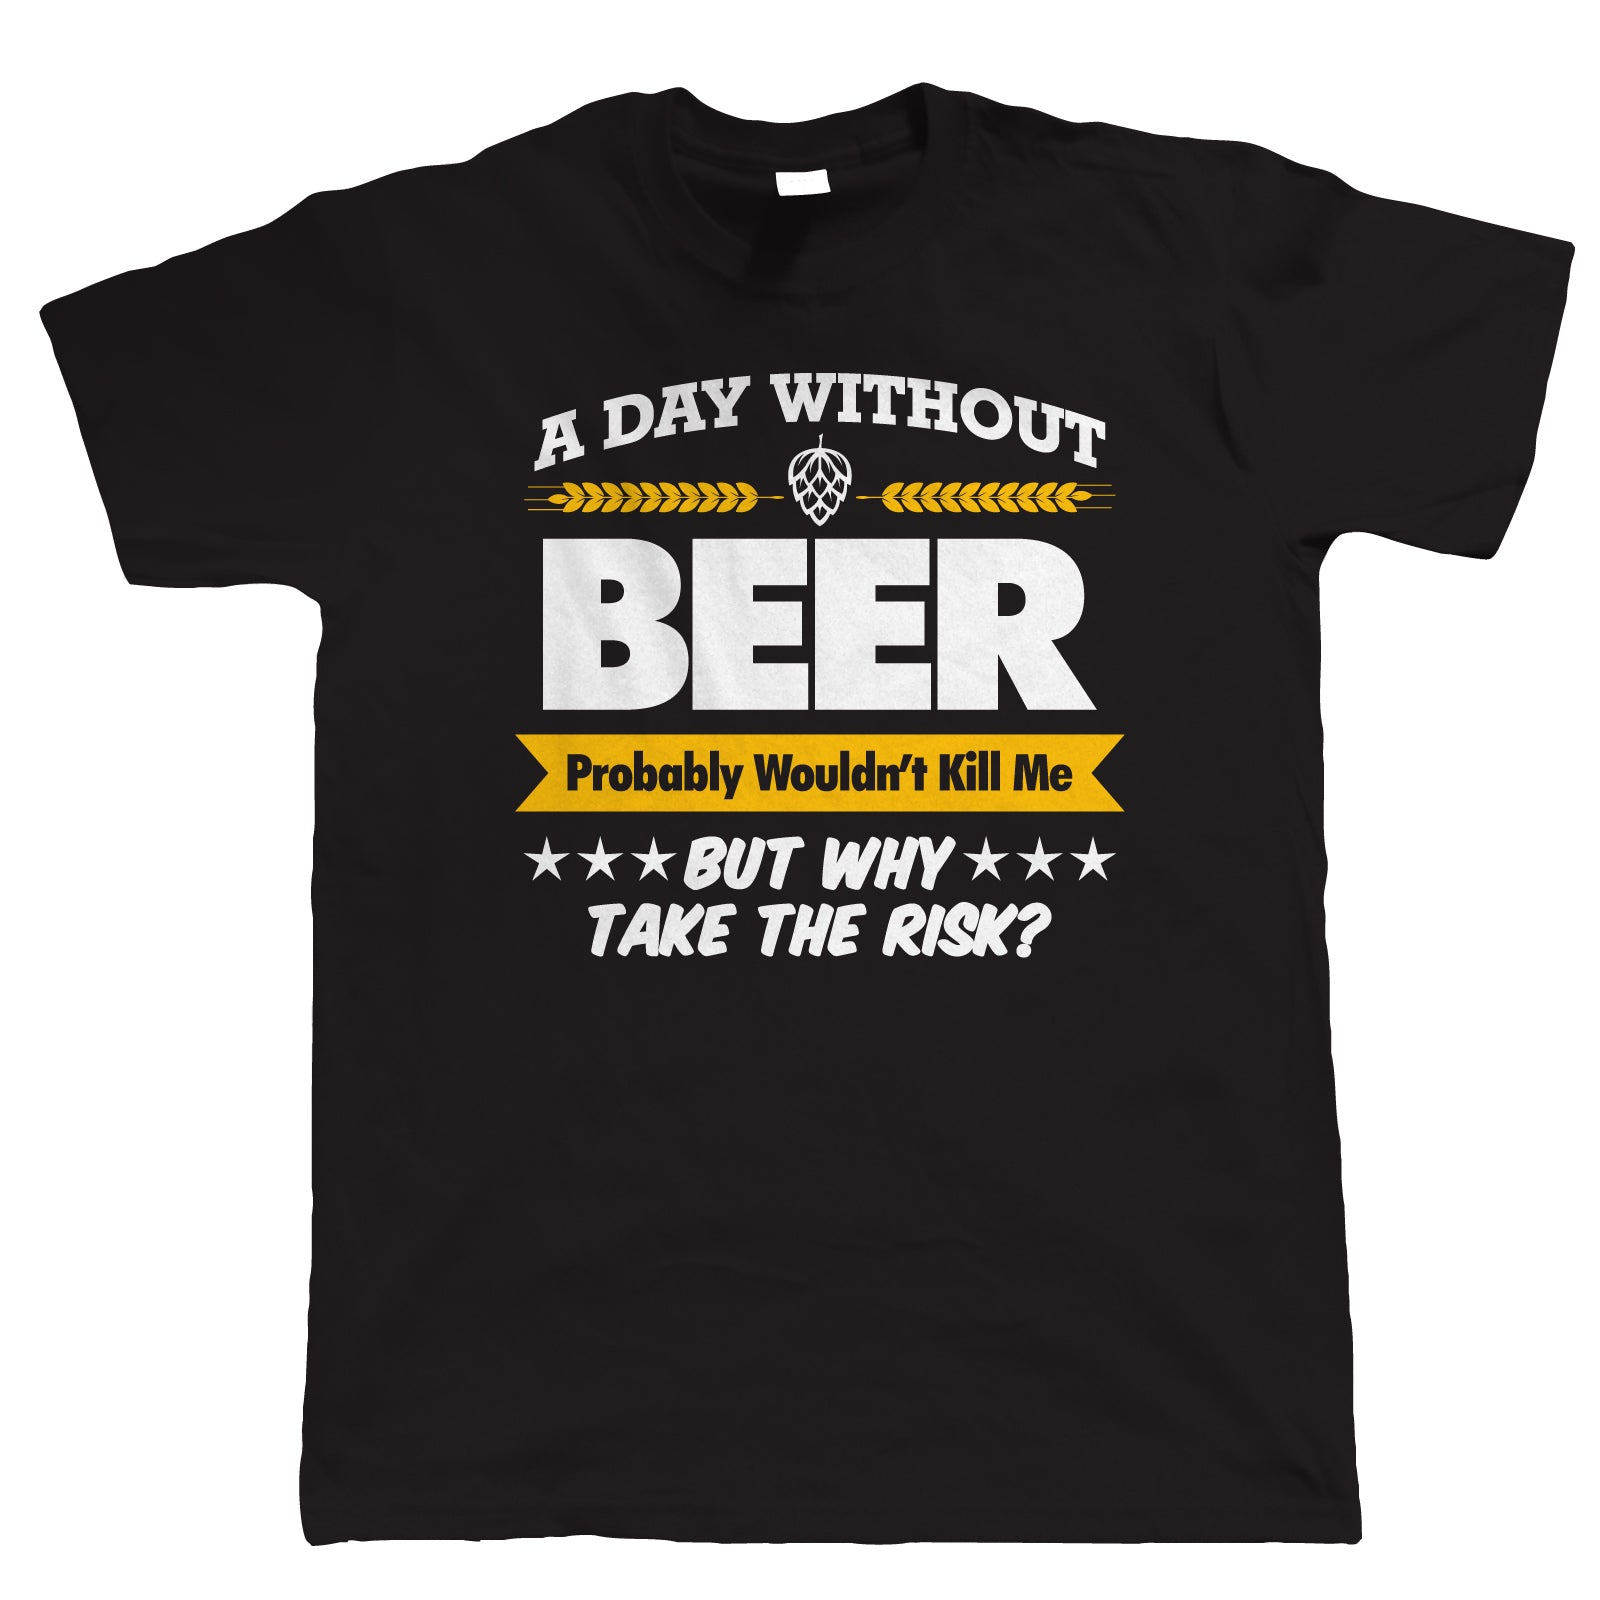 A Day Without Beer Funny Mens T-Shirt | Drink Beer Wine Cheers Celebrate Tipple Snifter | Humour Laughter Sarcasm Jokes Messing Comedy | Funny Gift Him Dad